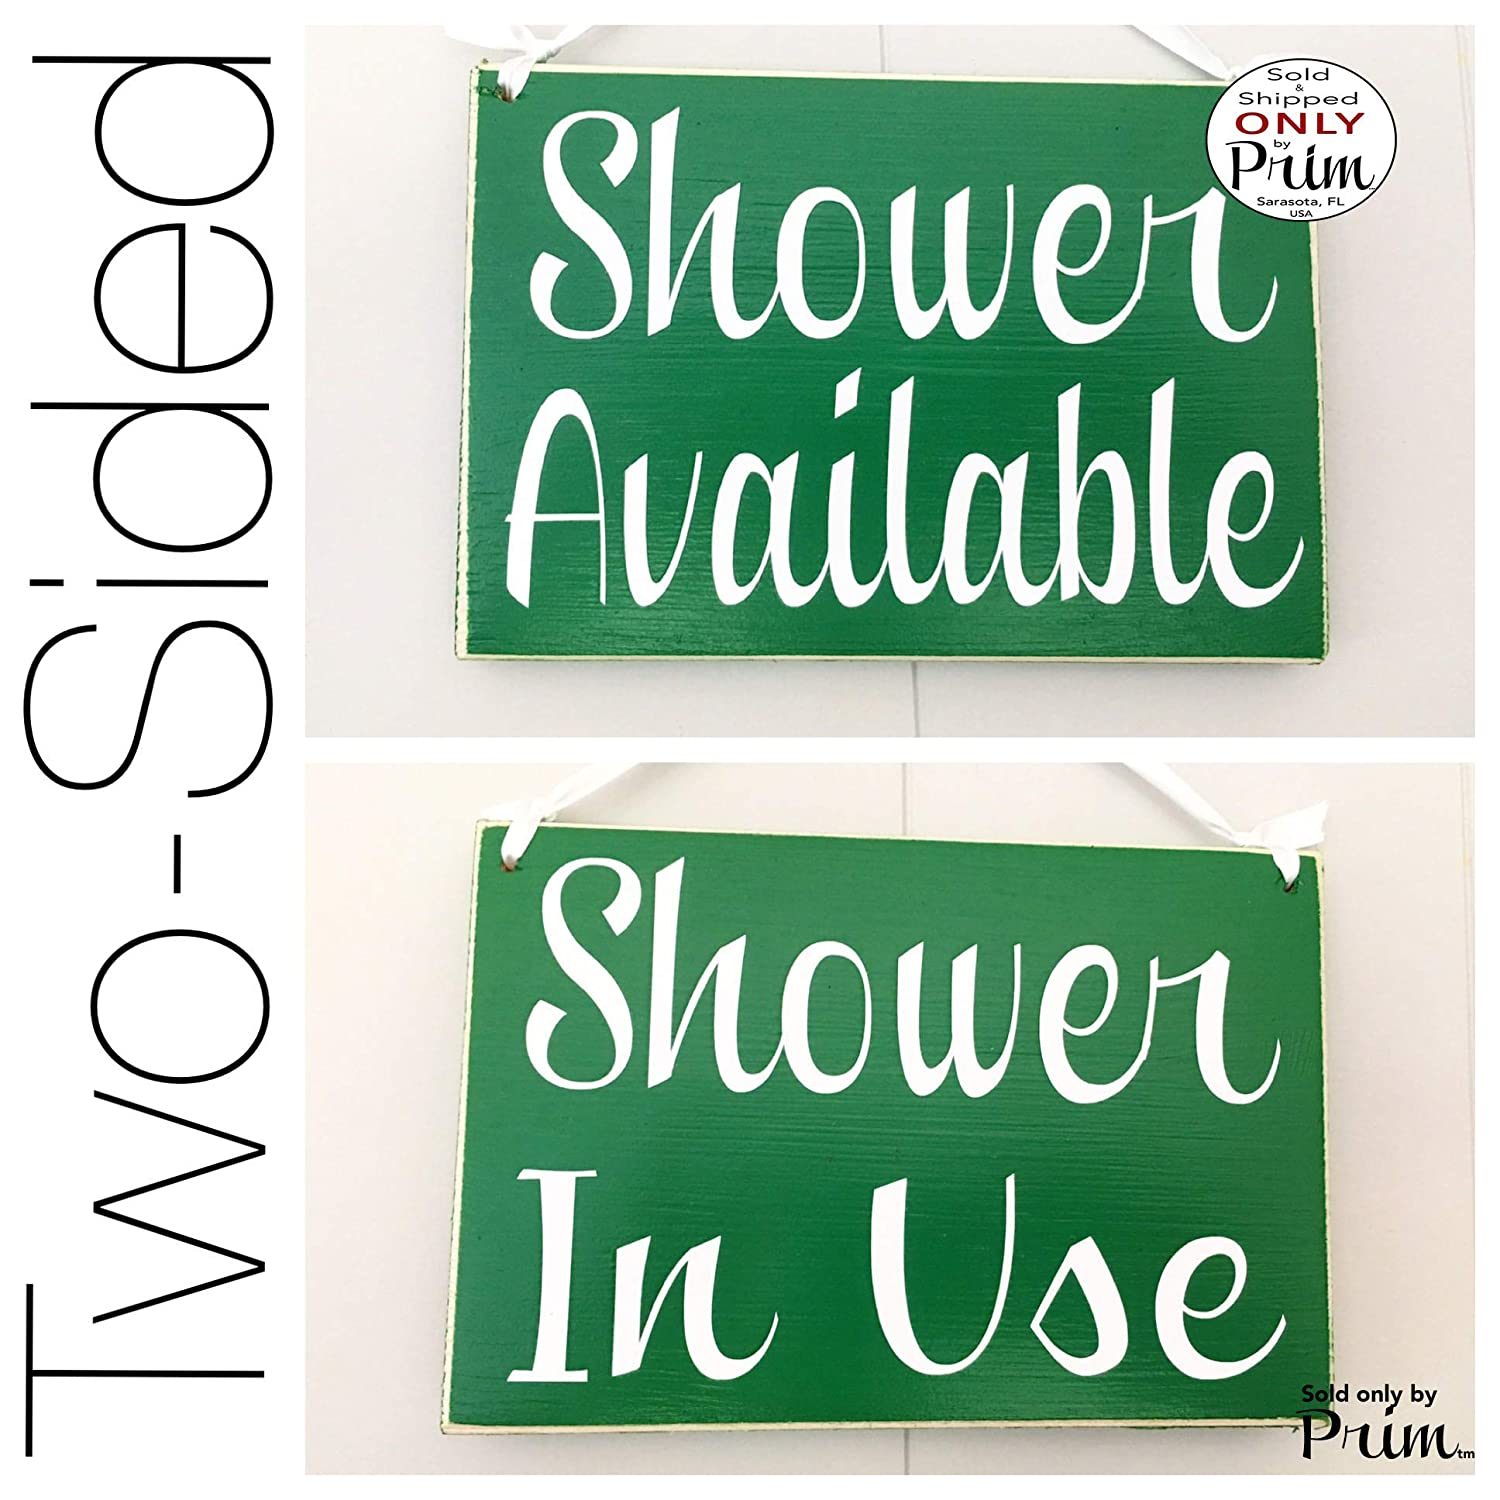 Shower In Use Available 8X6 (Choose Color) Please Do Not Disturb Be With You Shortly Spa In Session Please Do Not Disturb Meeting Office Spa Salon Shhh Speak Softly Custom Wood Sign